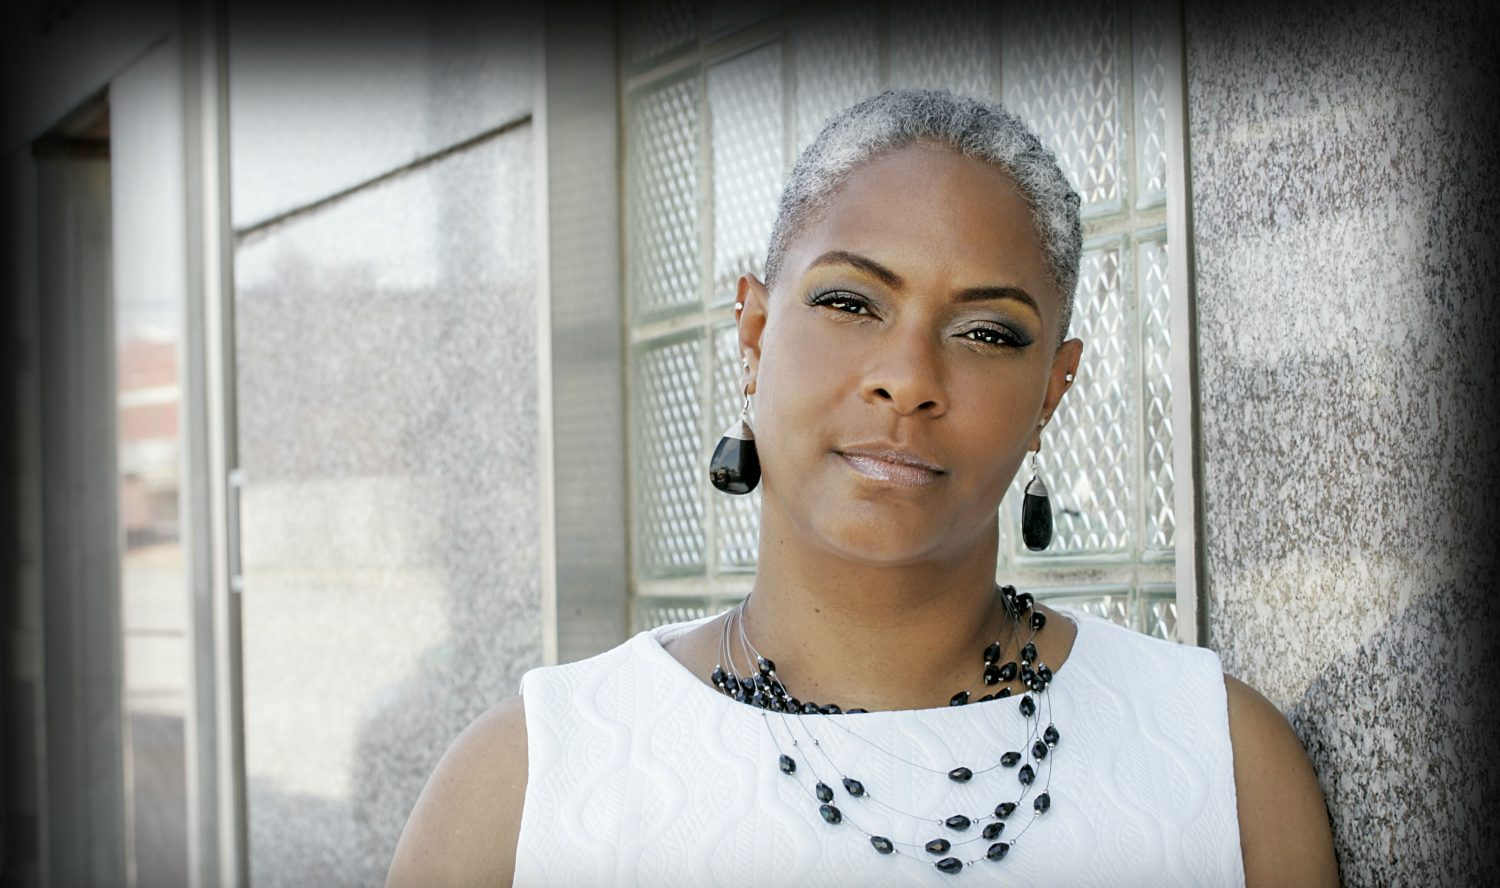 Monique Willis, founder of Momma on a Mission. (Credit: Iconic Visuals) helps those with the loss of family members